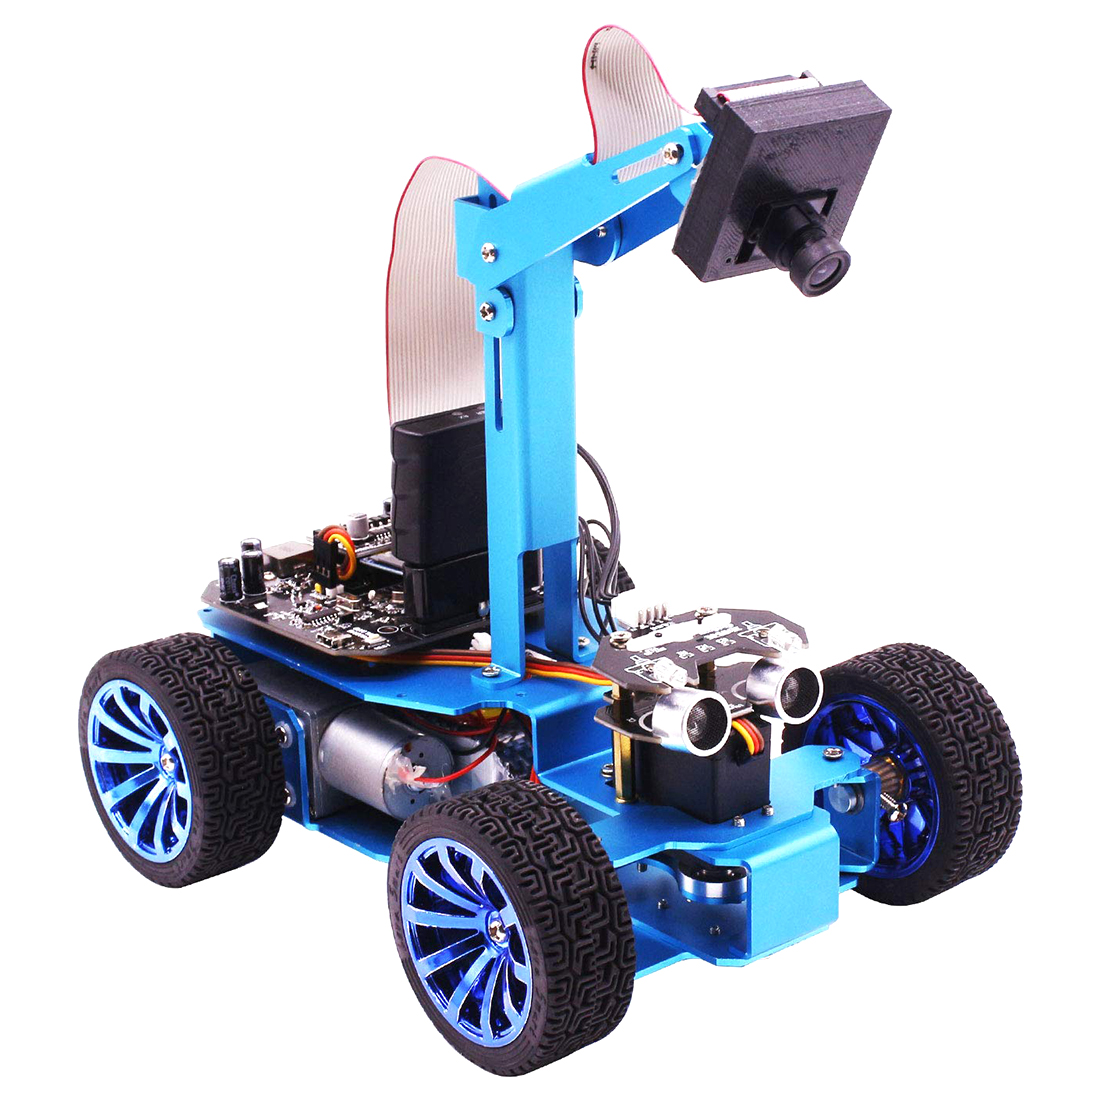 High Tech Visual Robot Camera Tracking OLED Screen Independent Steering Robotics High-Power Motor Programmable Car Toys Gift